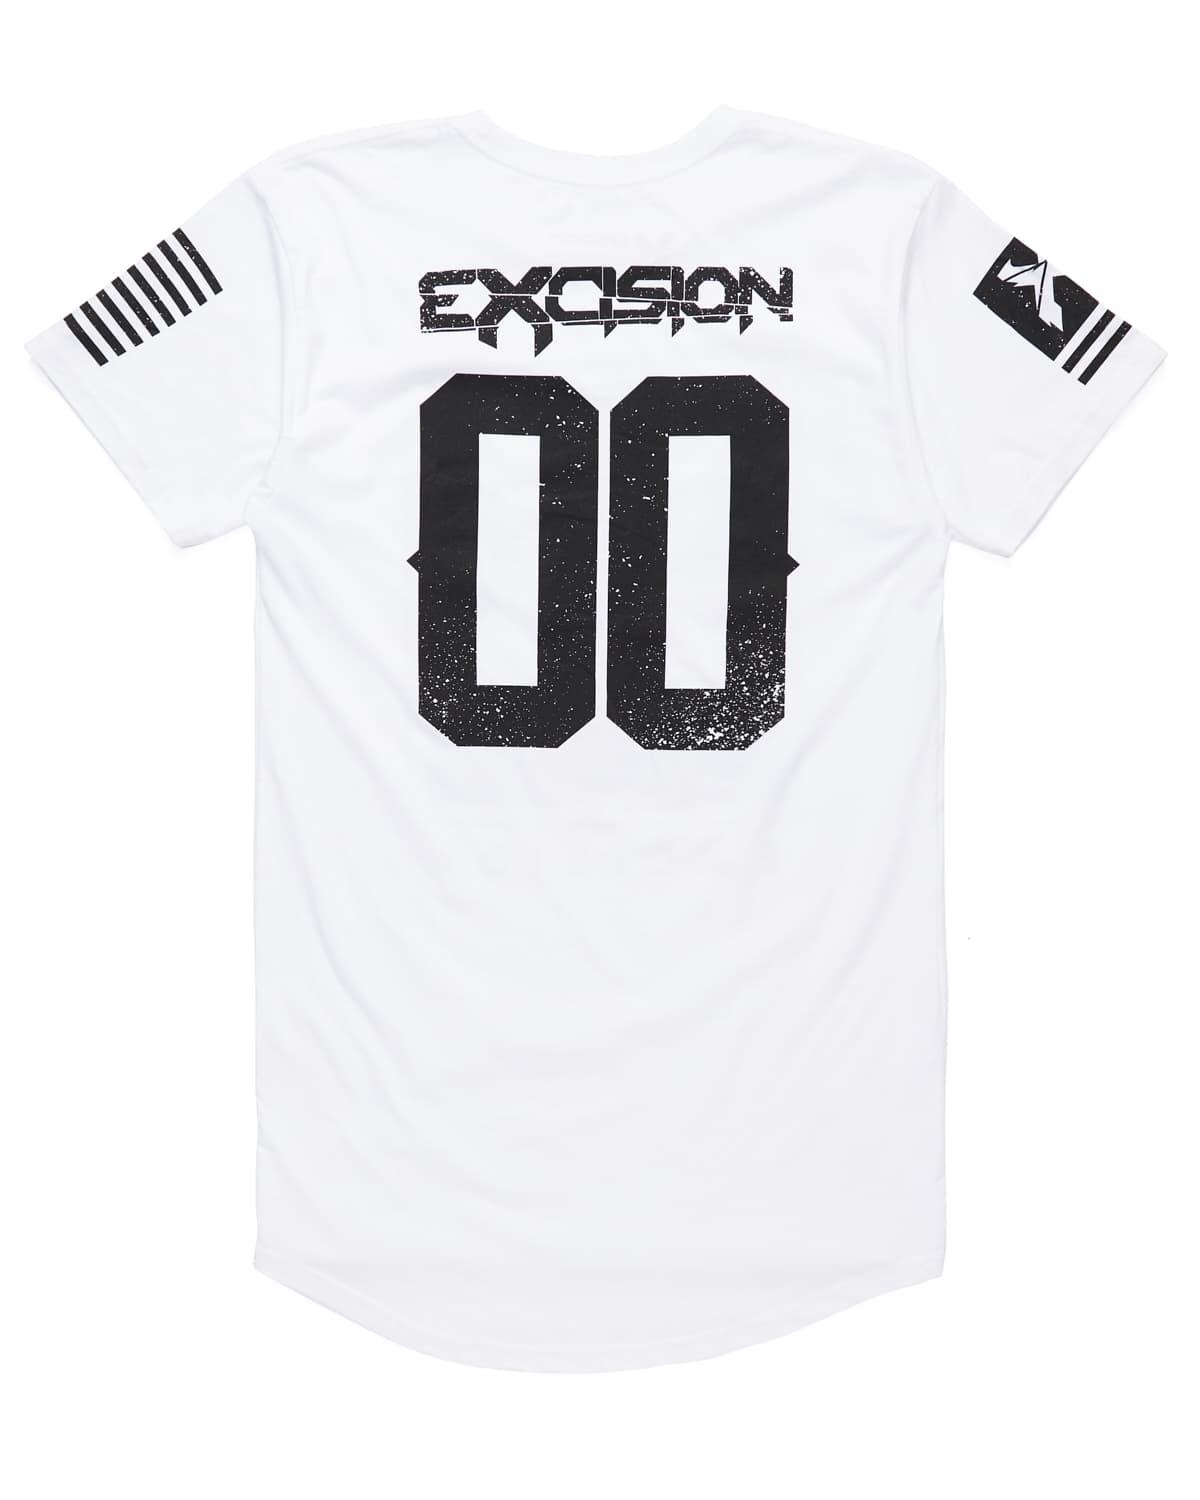 Excision 'Street' Droptail Tee - White